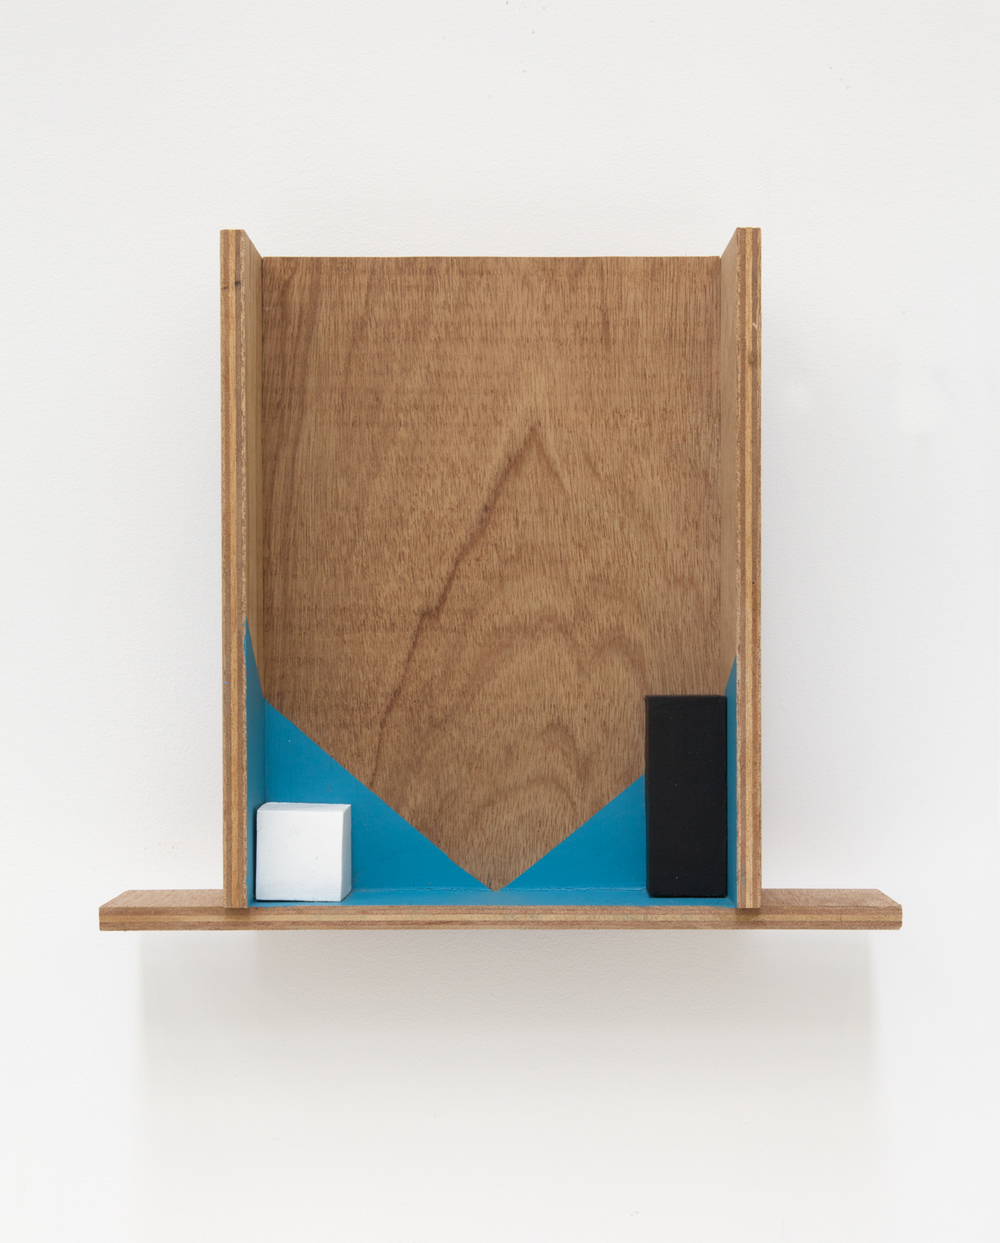 Kishio Suga  Emerging Two Corners  2008 Plywood, wood, and  paint 15 ¾h  x 13 ⅜w  x 4 ⅛d in KS006